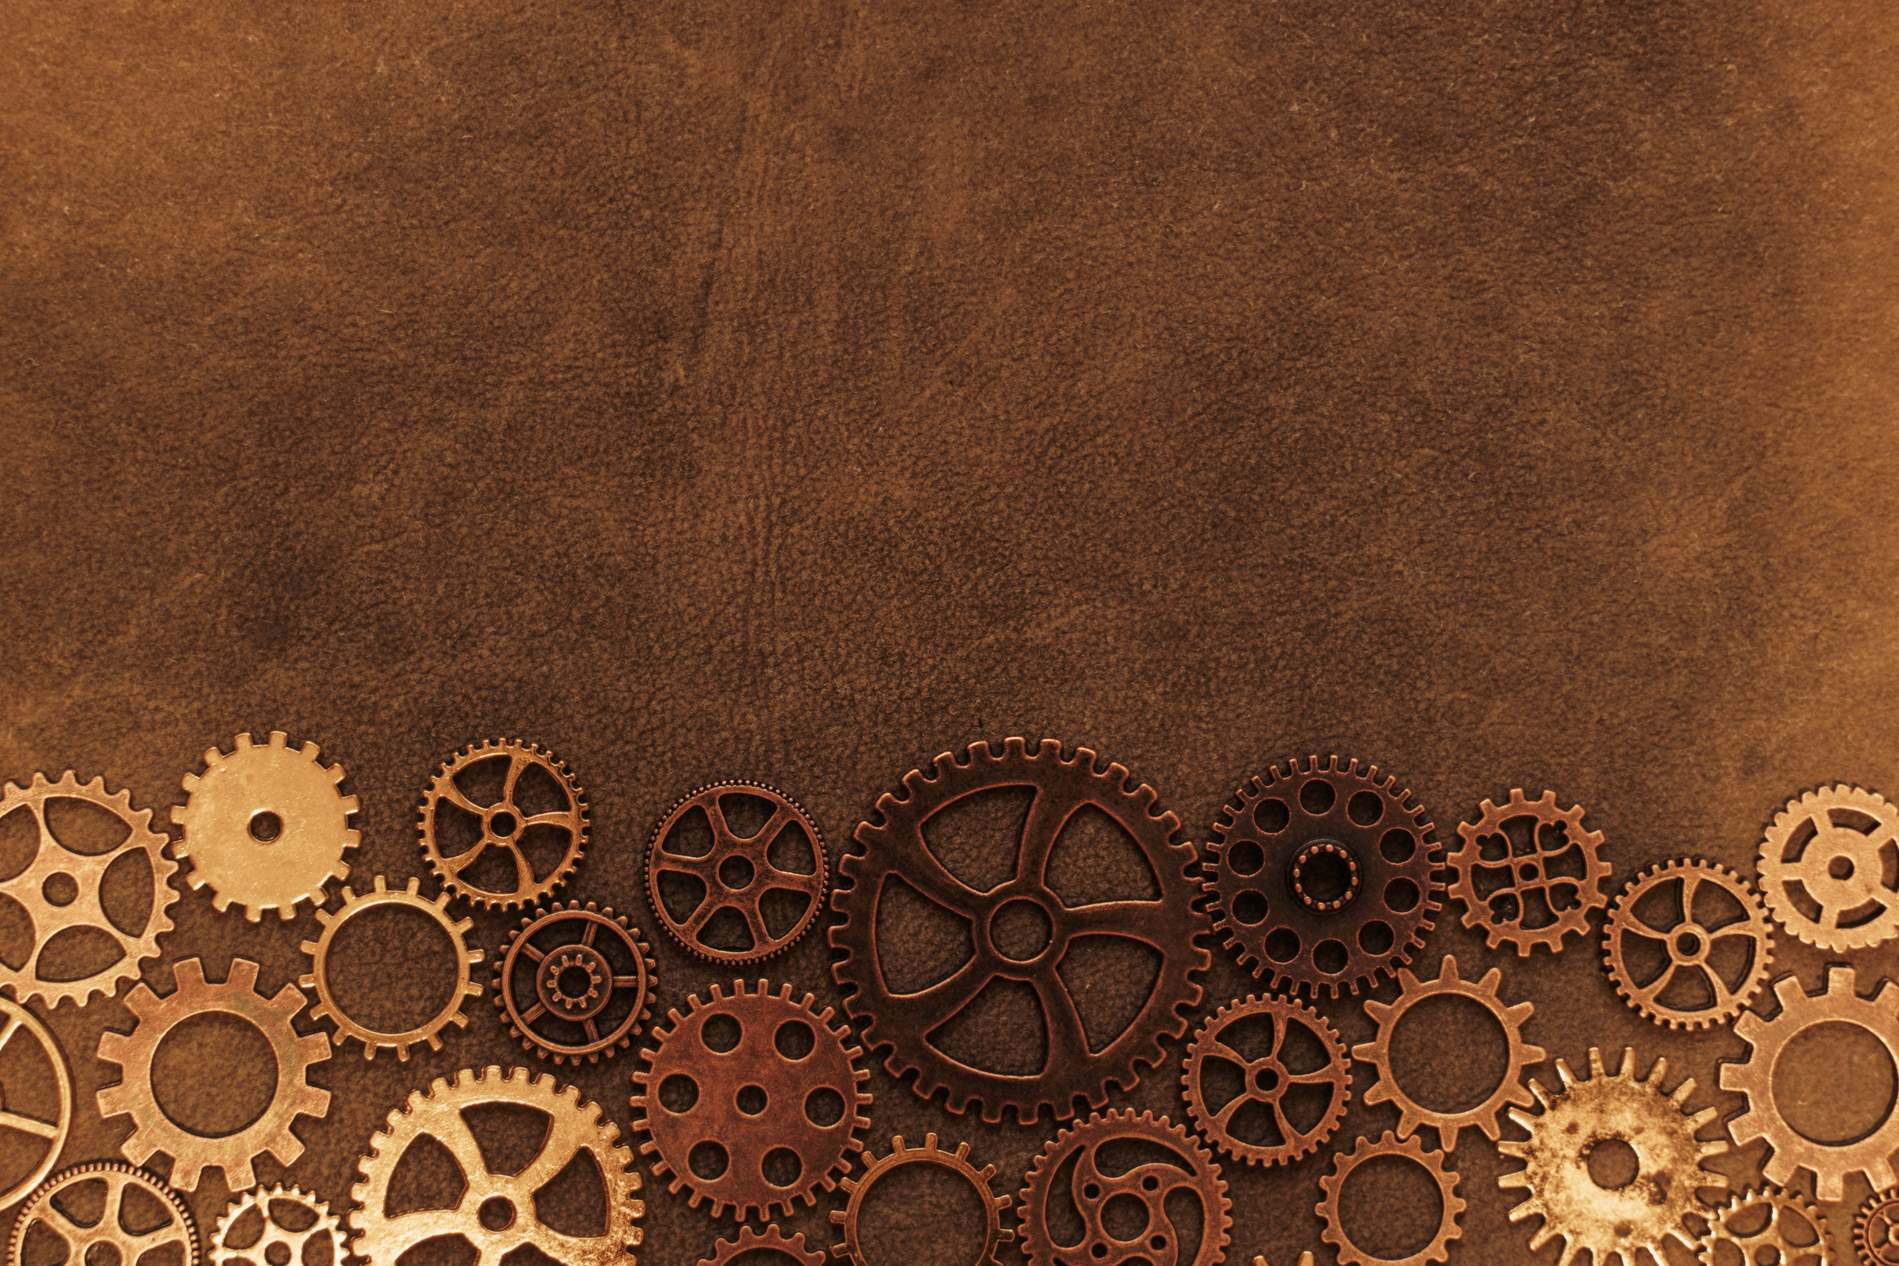 Vintage Brown Steampunk Gears Background   PhotoHDX 1899x1266